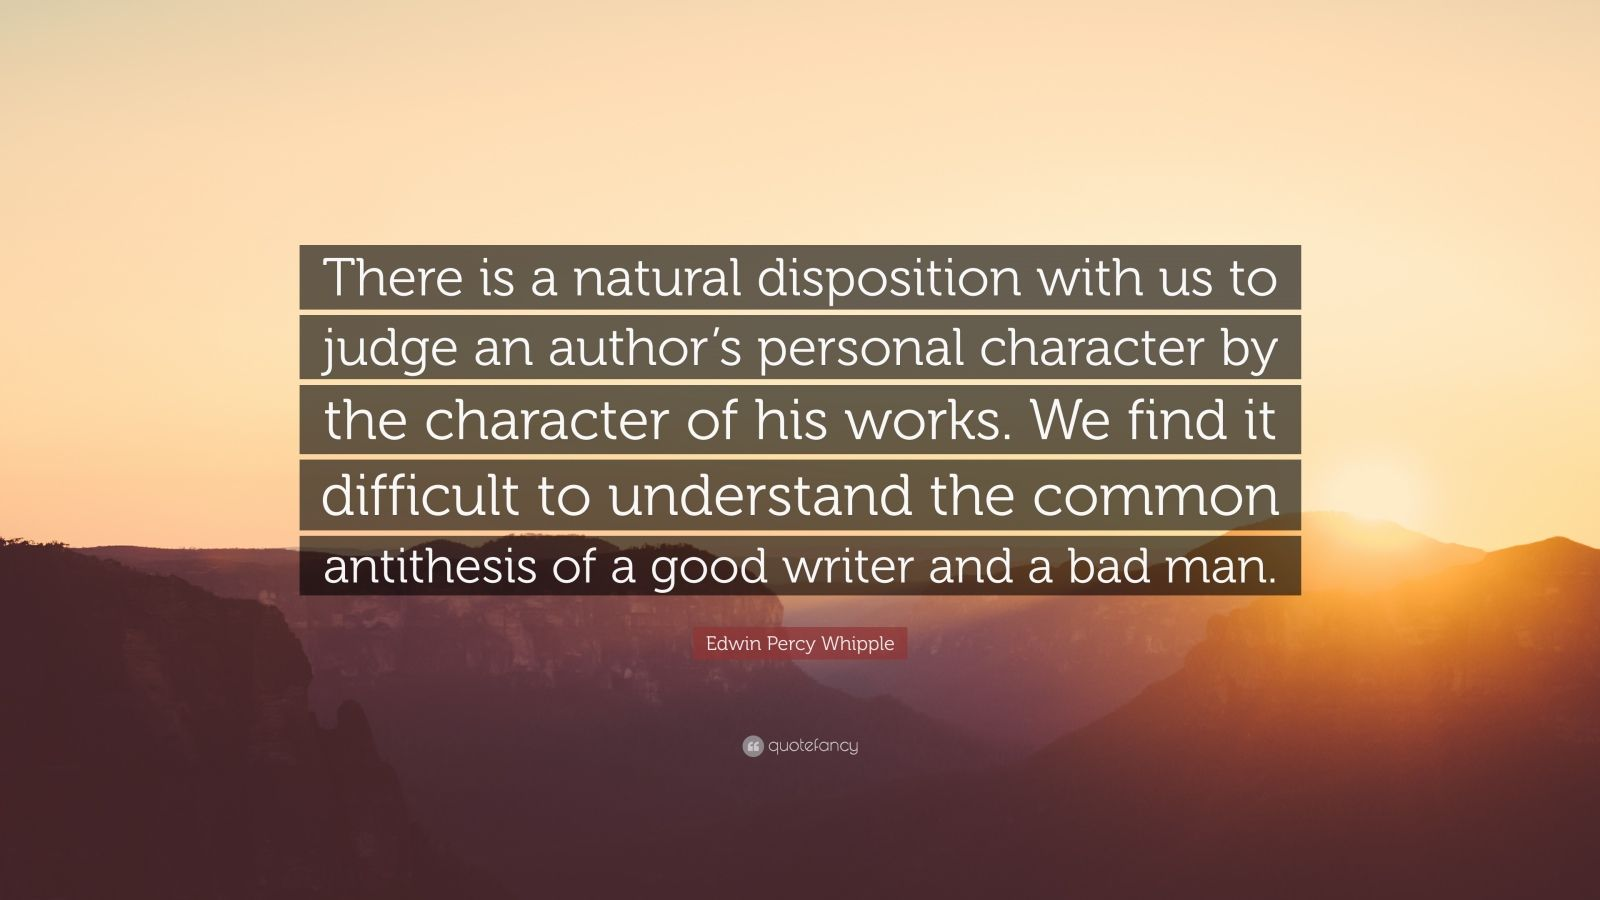 """Edwin Percy Whipple Quote: """"There is a natural disposition with us to judge an author's personal character by the character of his works. We find it difficult to understand the common antithesis of a good writer and a bad man."""""""